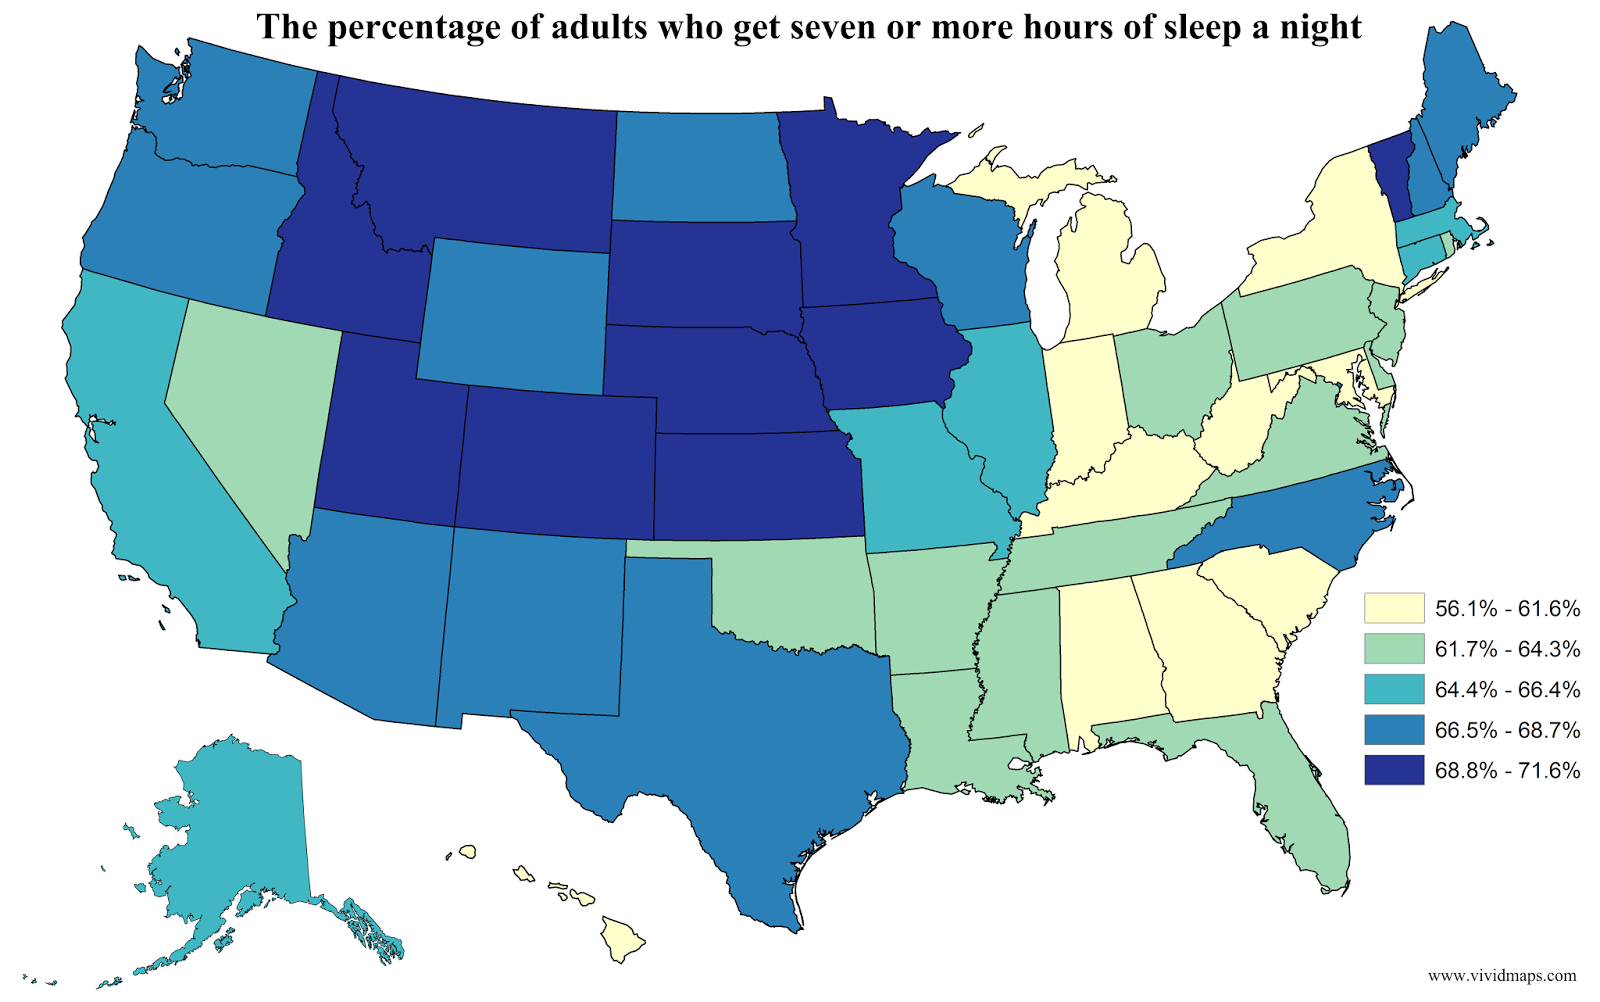 The percentage of adults who get seven or more hours of sleep a night